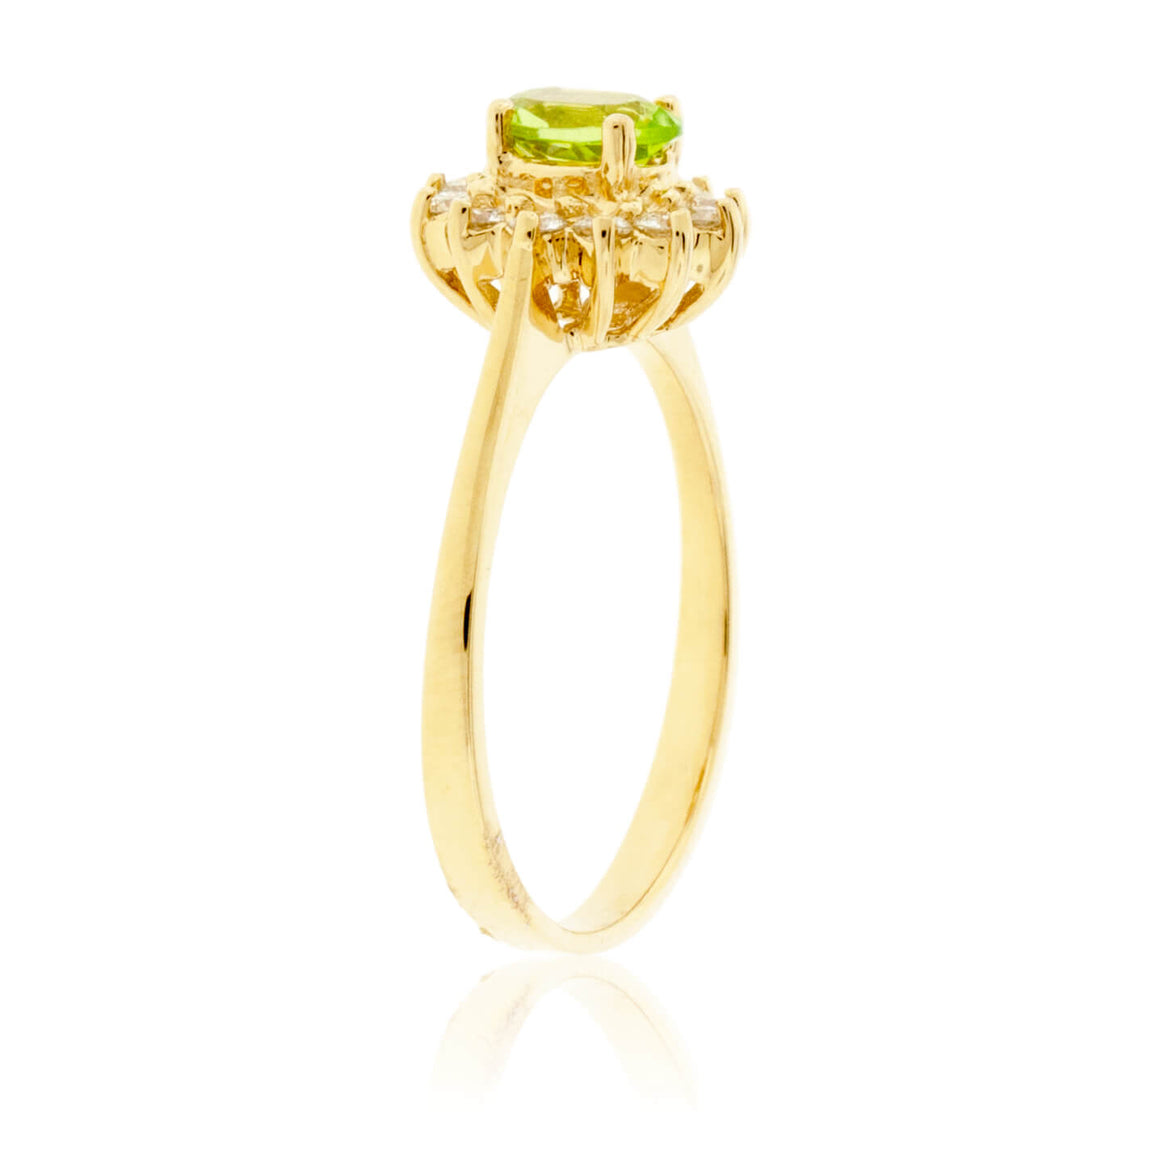 Oval Peridot & Classic Diamond Halo Ring